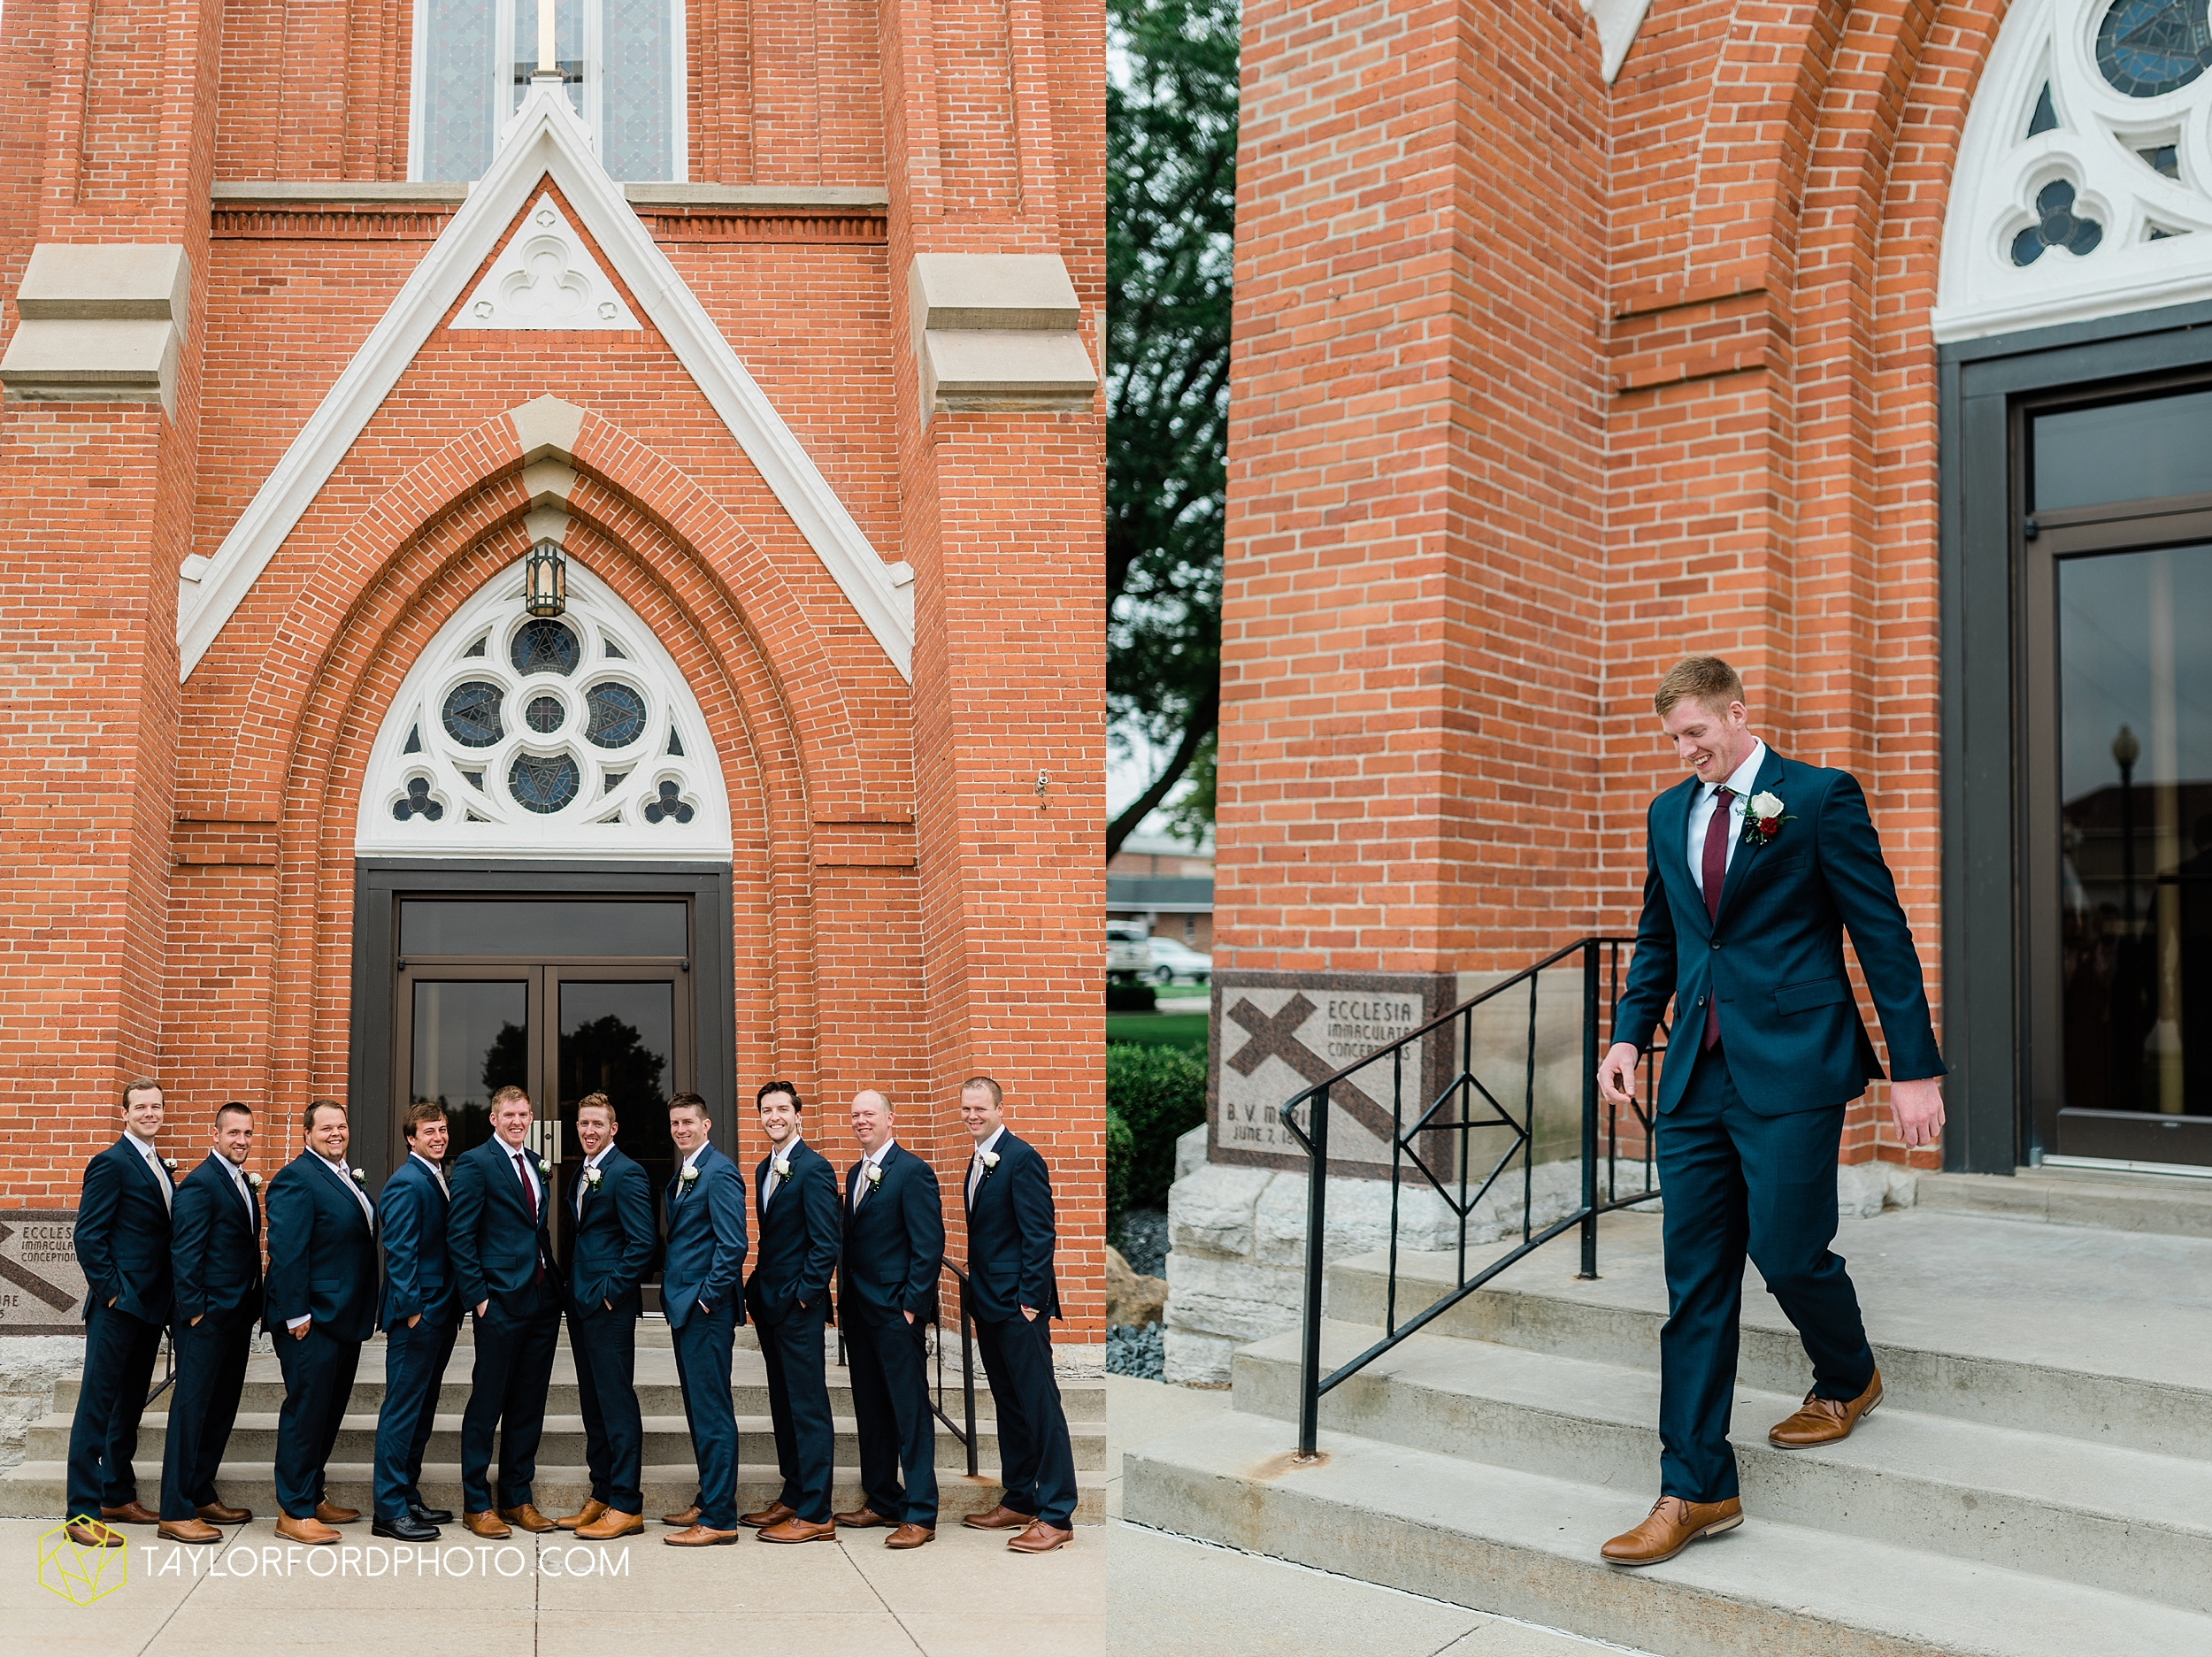 gayle-rayman-mike-steele-ottoville-ohio-wedding-immaculate-conception-parish-center-wedding-sycamore-lake-winery-wannamachers-photographer-taylor-ford-photography_0386.jpg